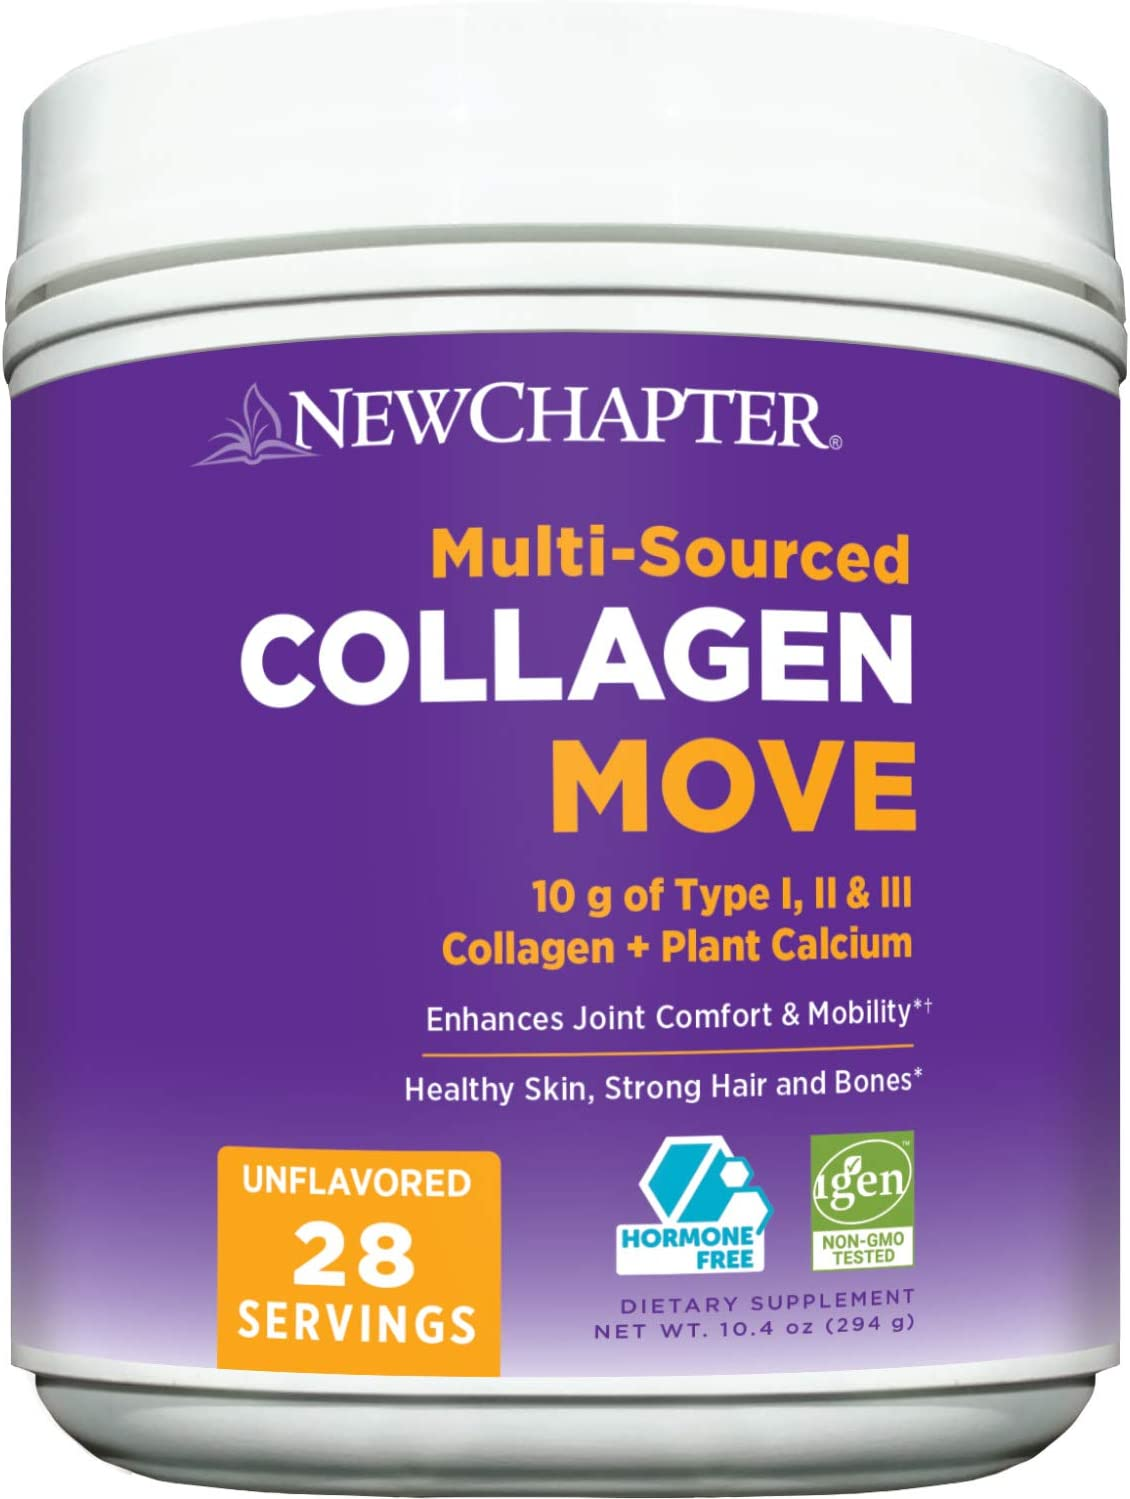 New Chapter Collagen Powder Move Courier 5% OFF shipping free I Types 10g Peptides